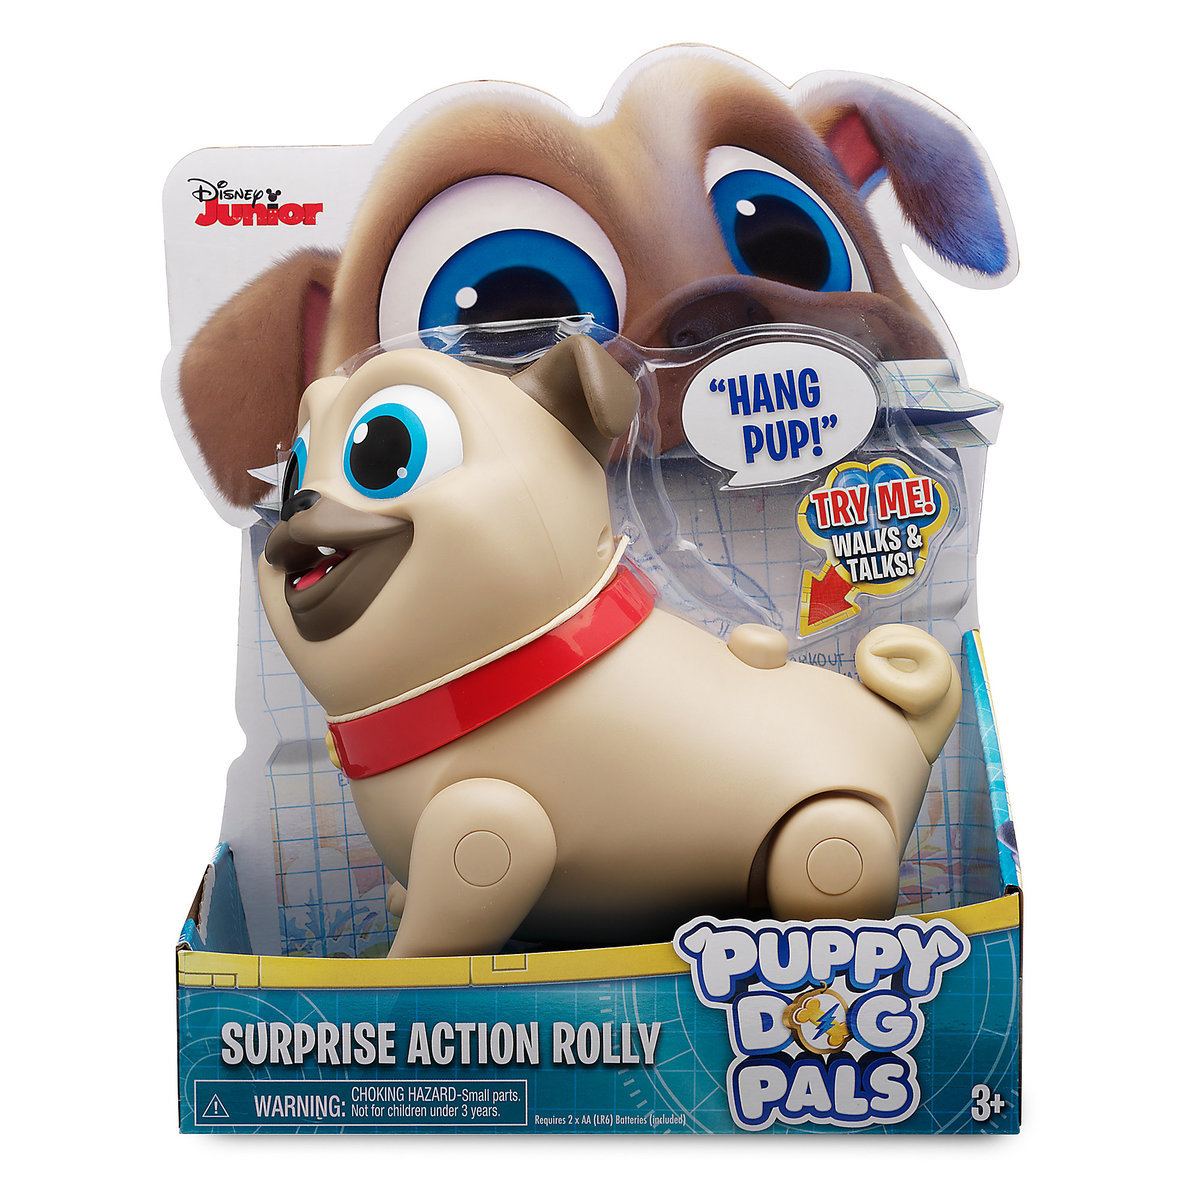 24e8d06003a Product Image of Rolly Surprise Action Toy - Puppy Dog Pals   2